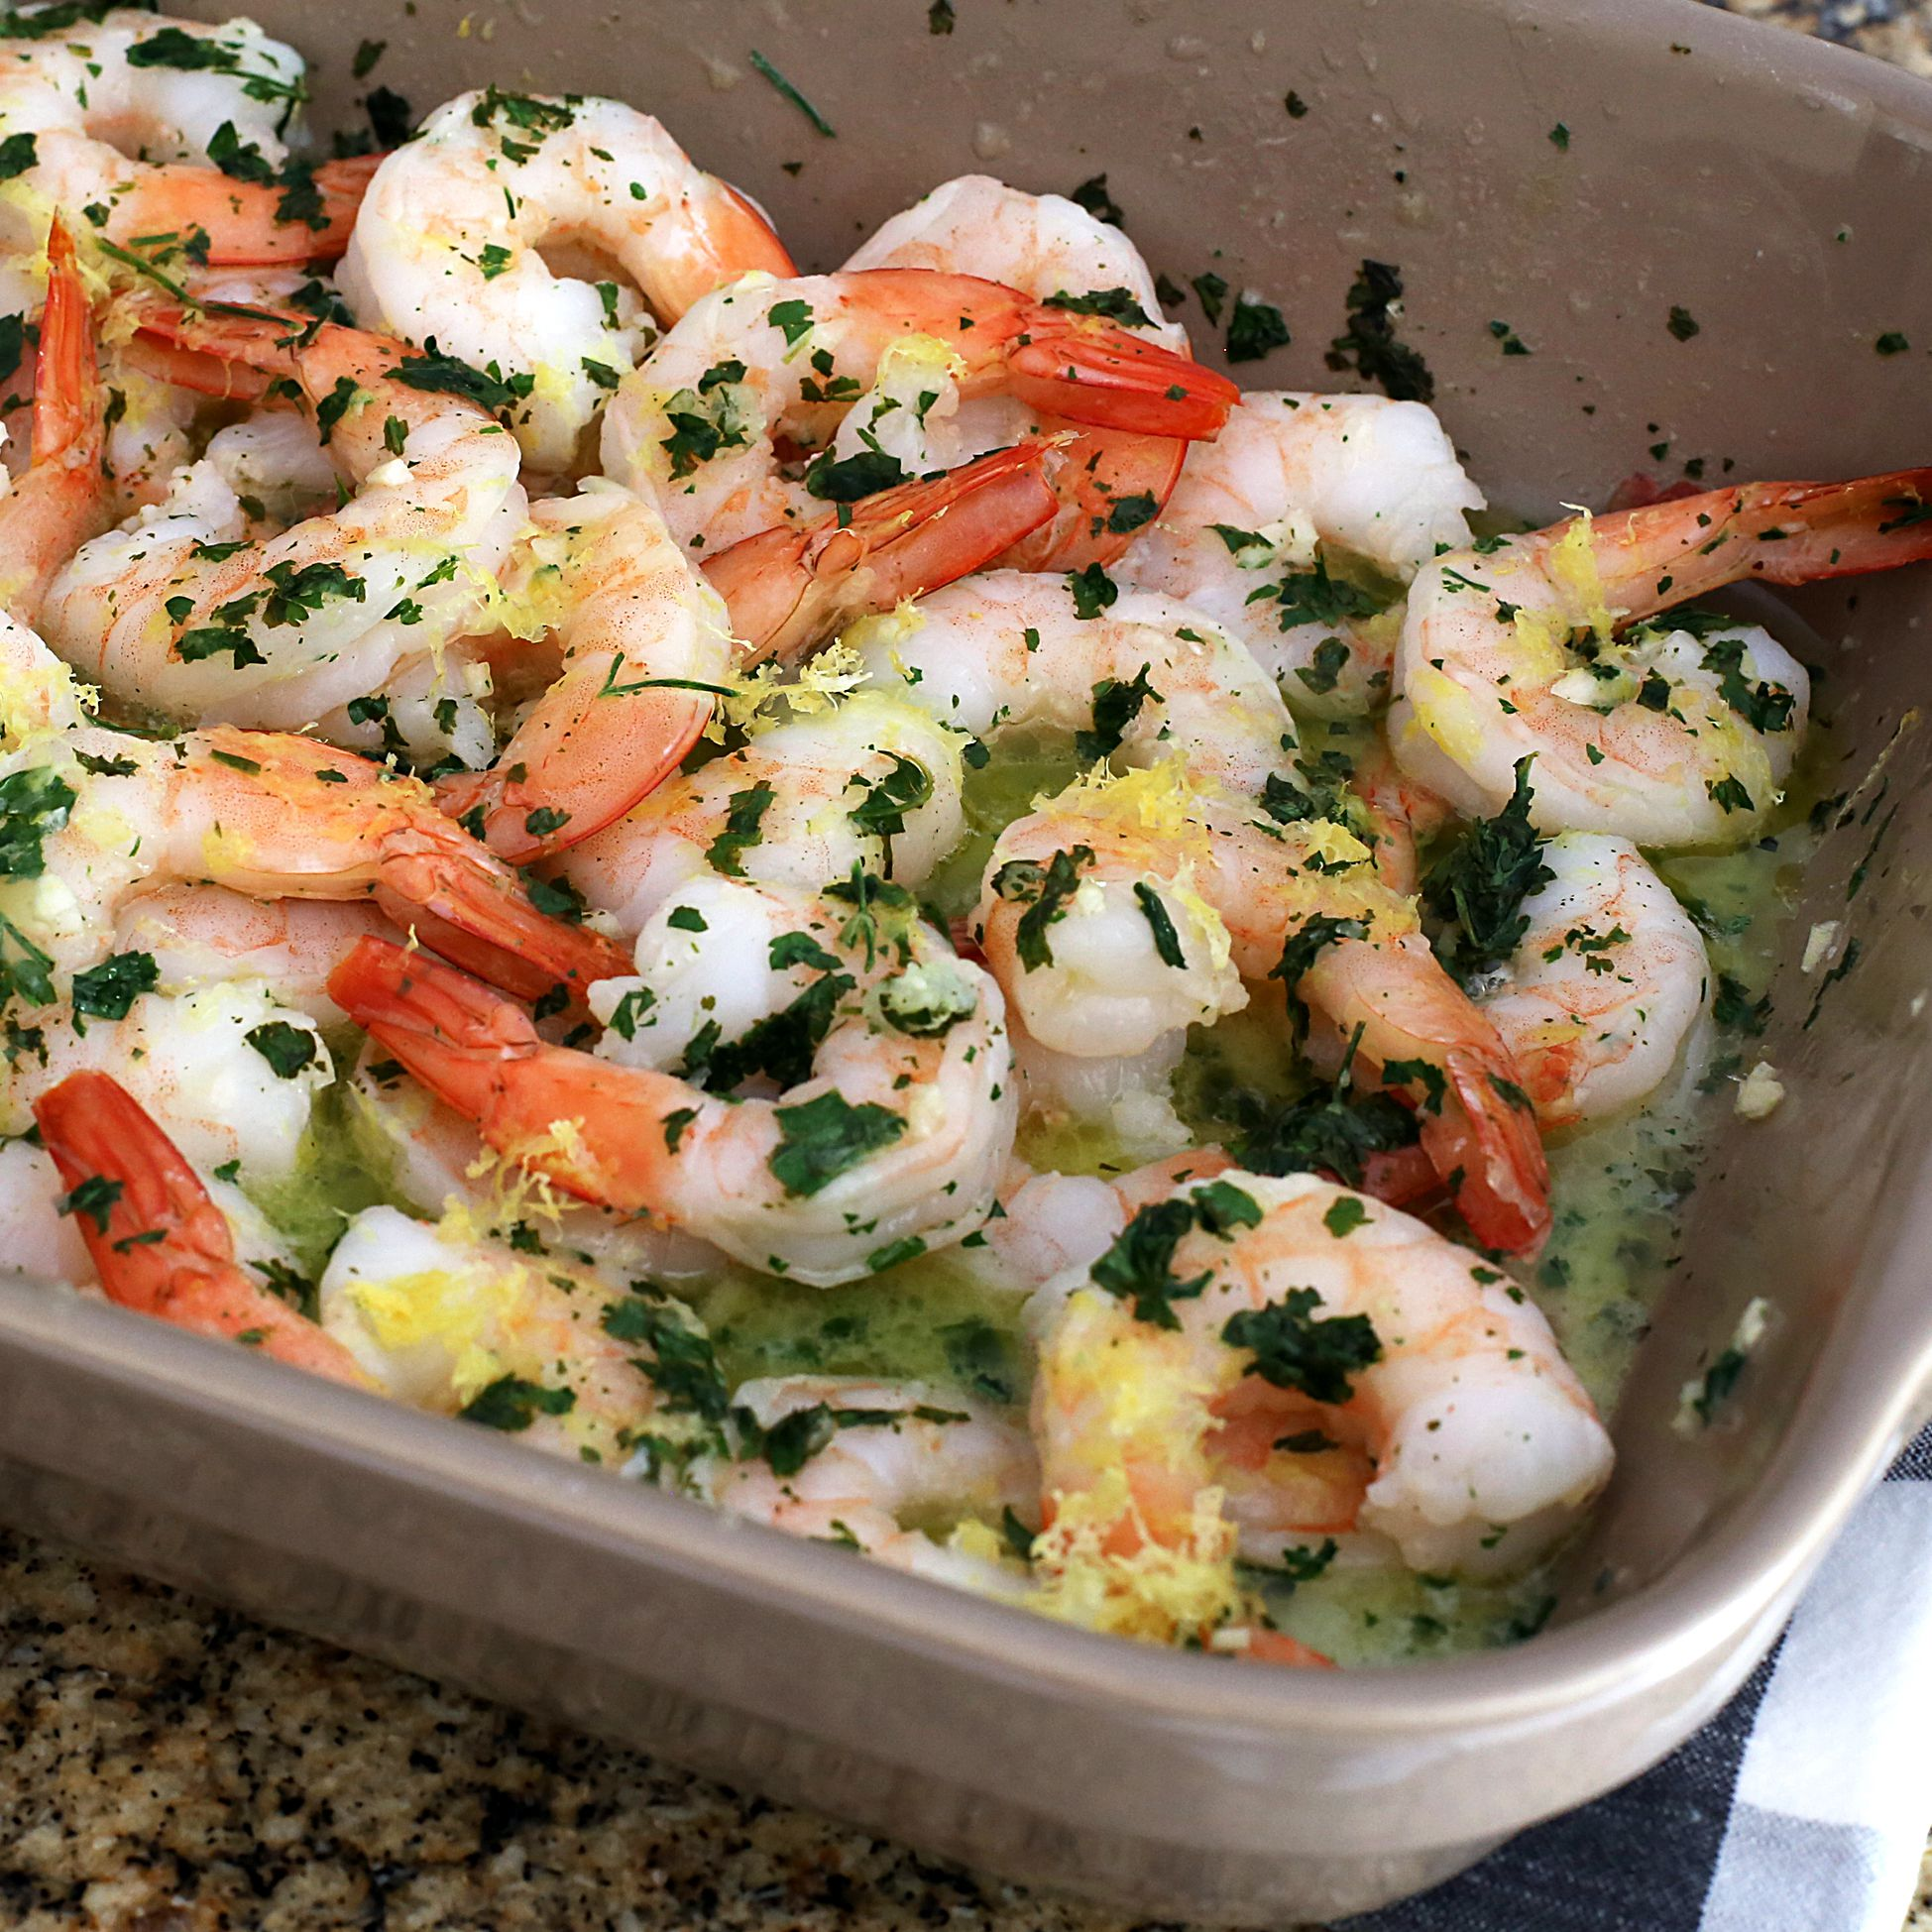 Baked Shrimp Scampi With Lemon and Garlic